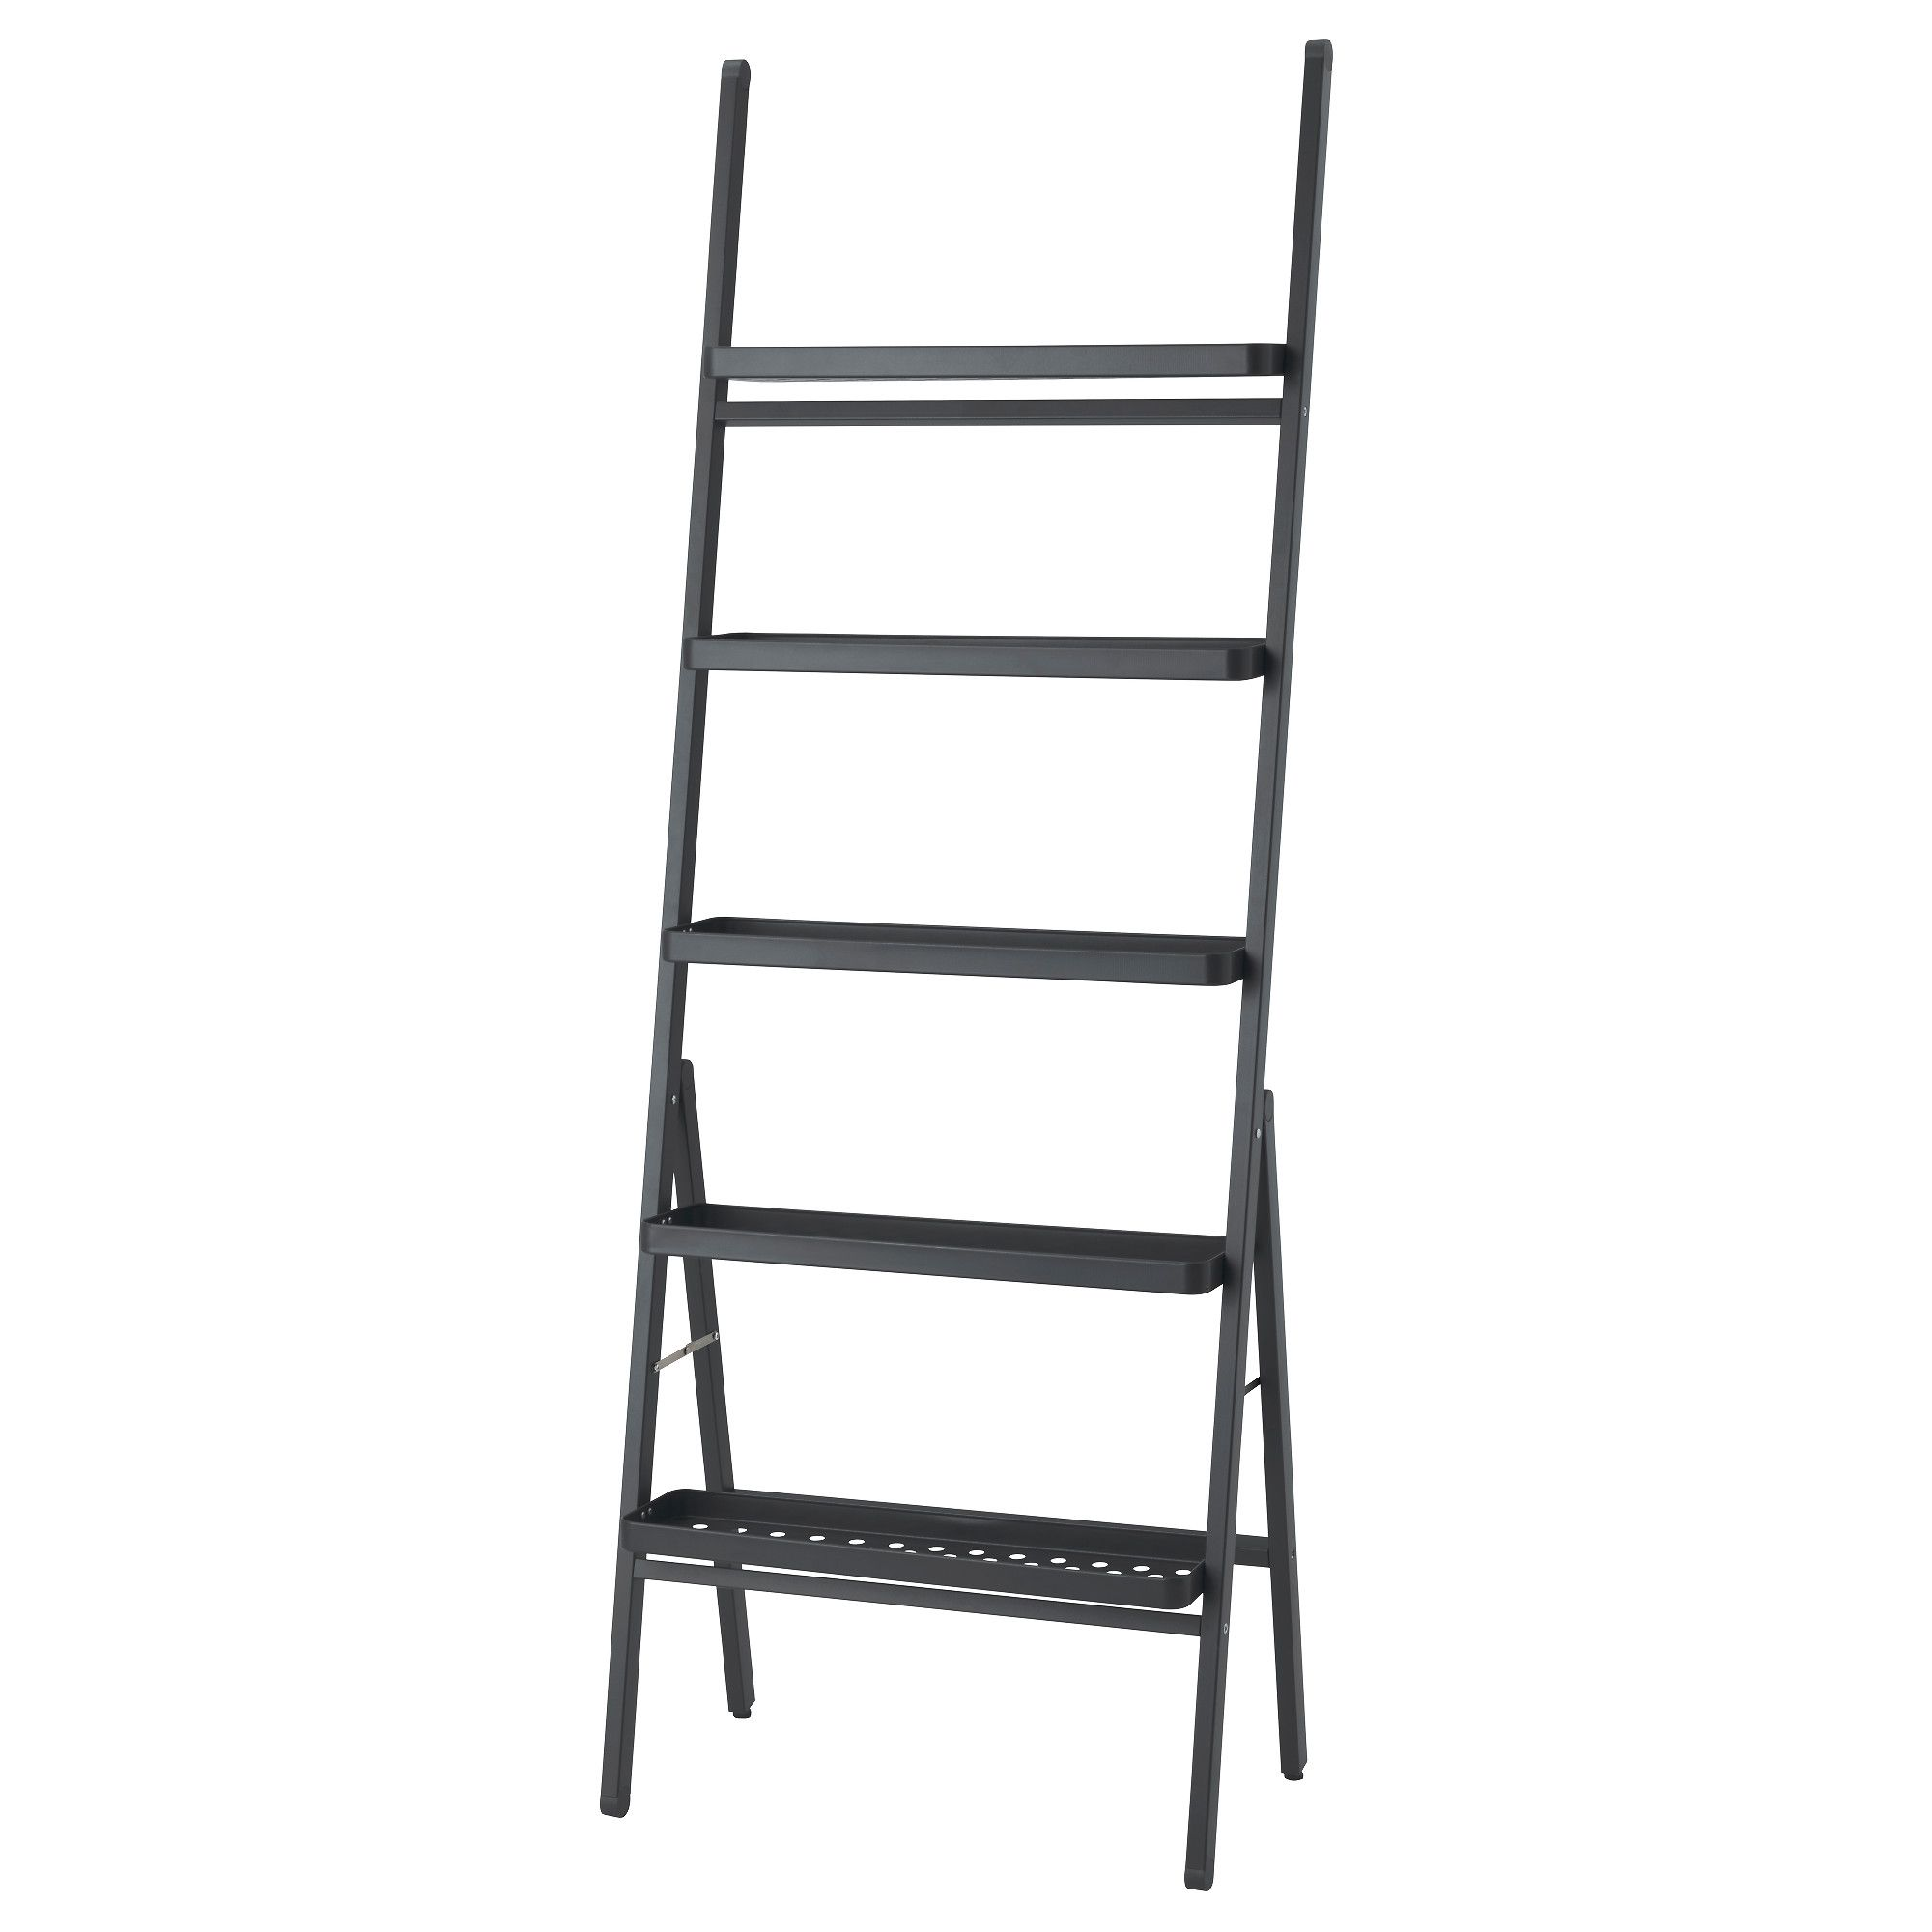 ikea plant stand ikea salladsk 197 l plant stand the decorative ladder 11799